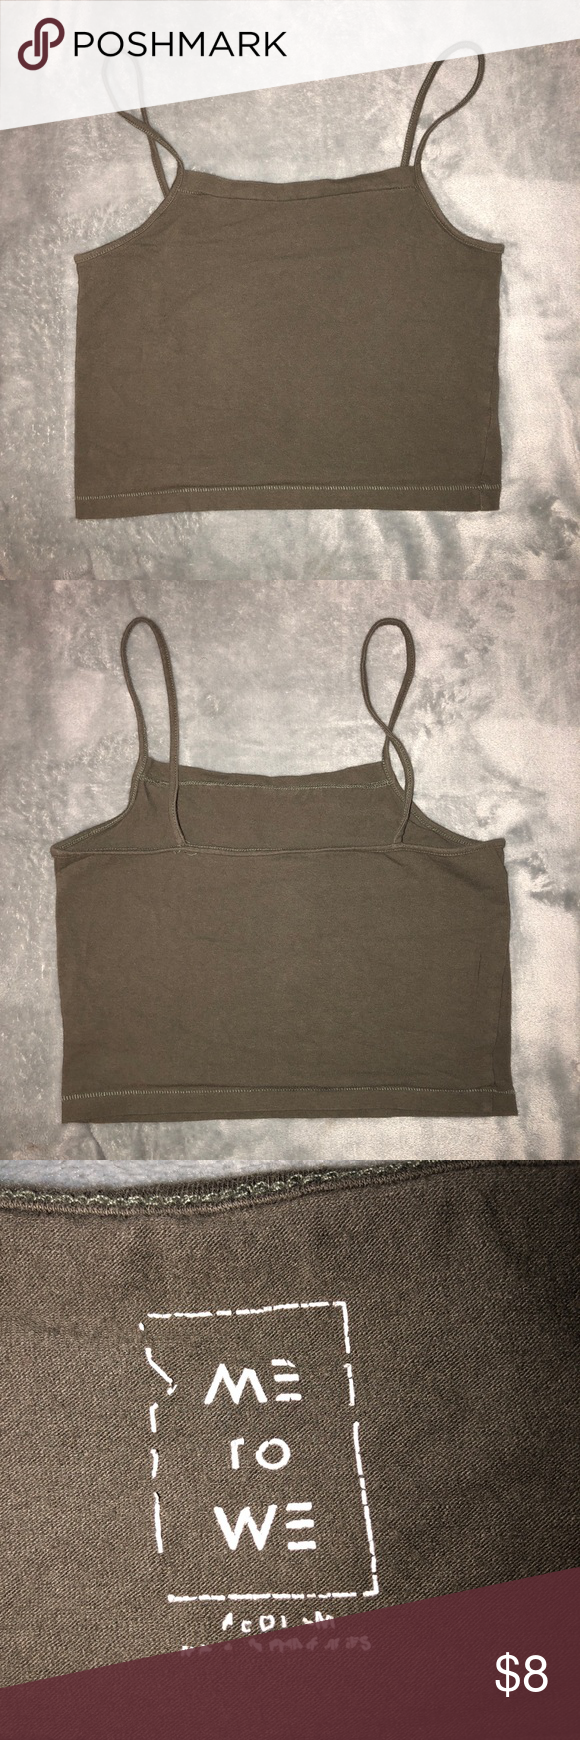 Sale Olive Green Crop Top Size Medium Olive Green Crop Top From Pacsun Size Medium No Flaws Pairs Well With Bandeau M Green Crop Top Crop Tops Olive Green